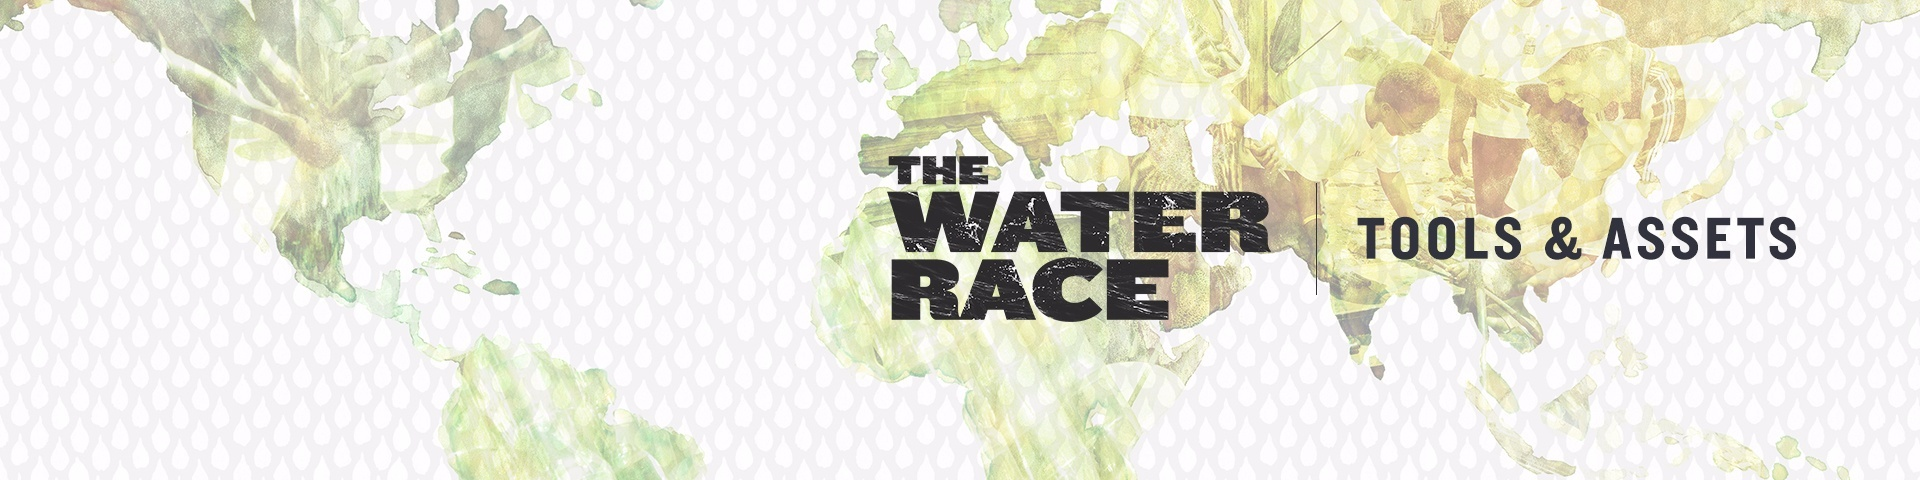 9. The Water Race Tools & Assets